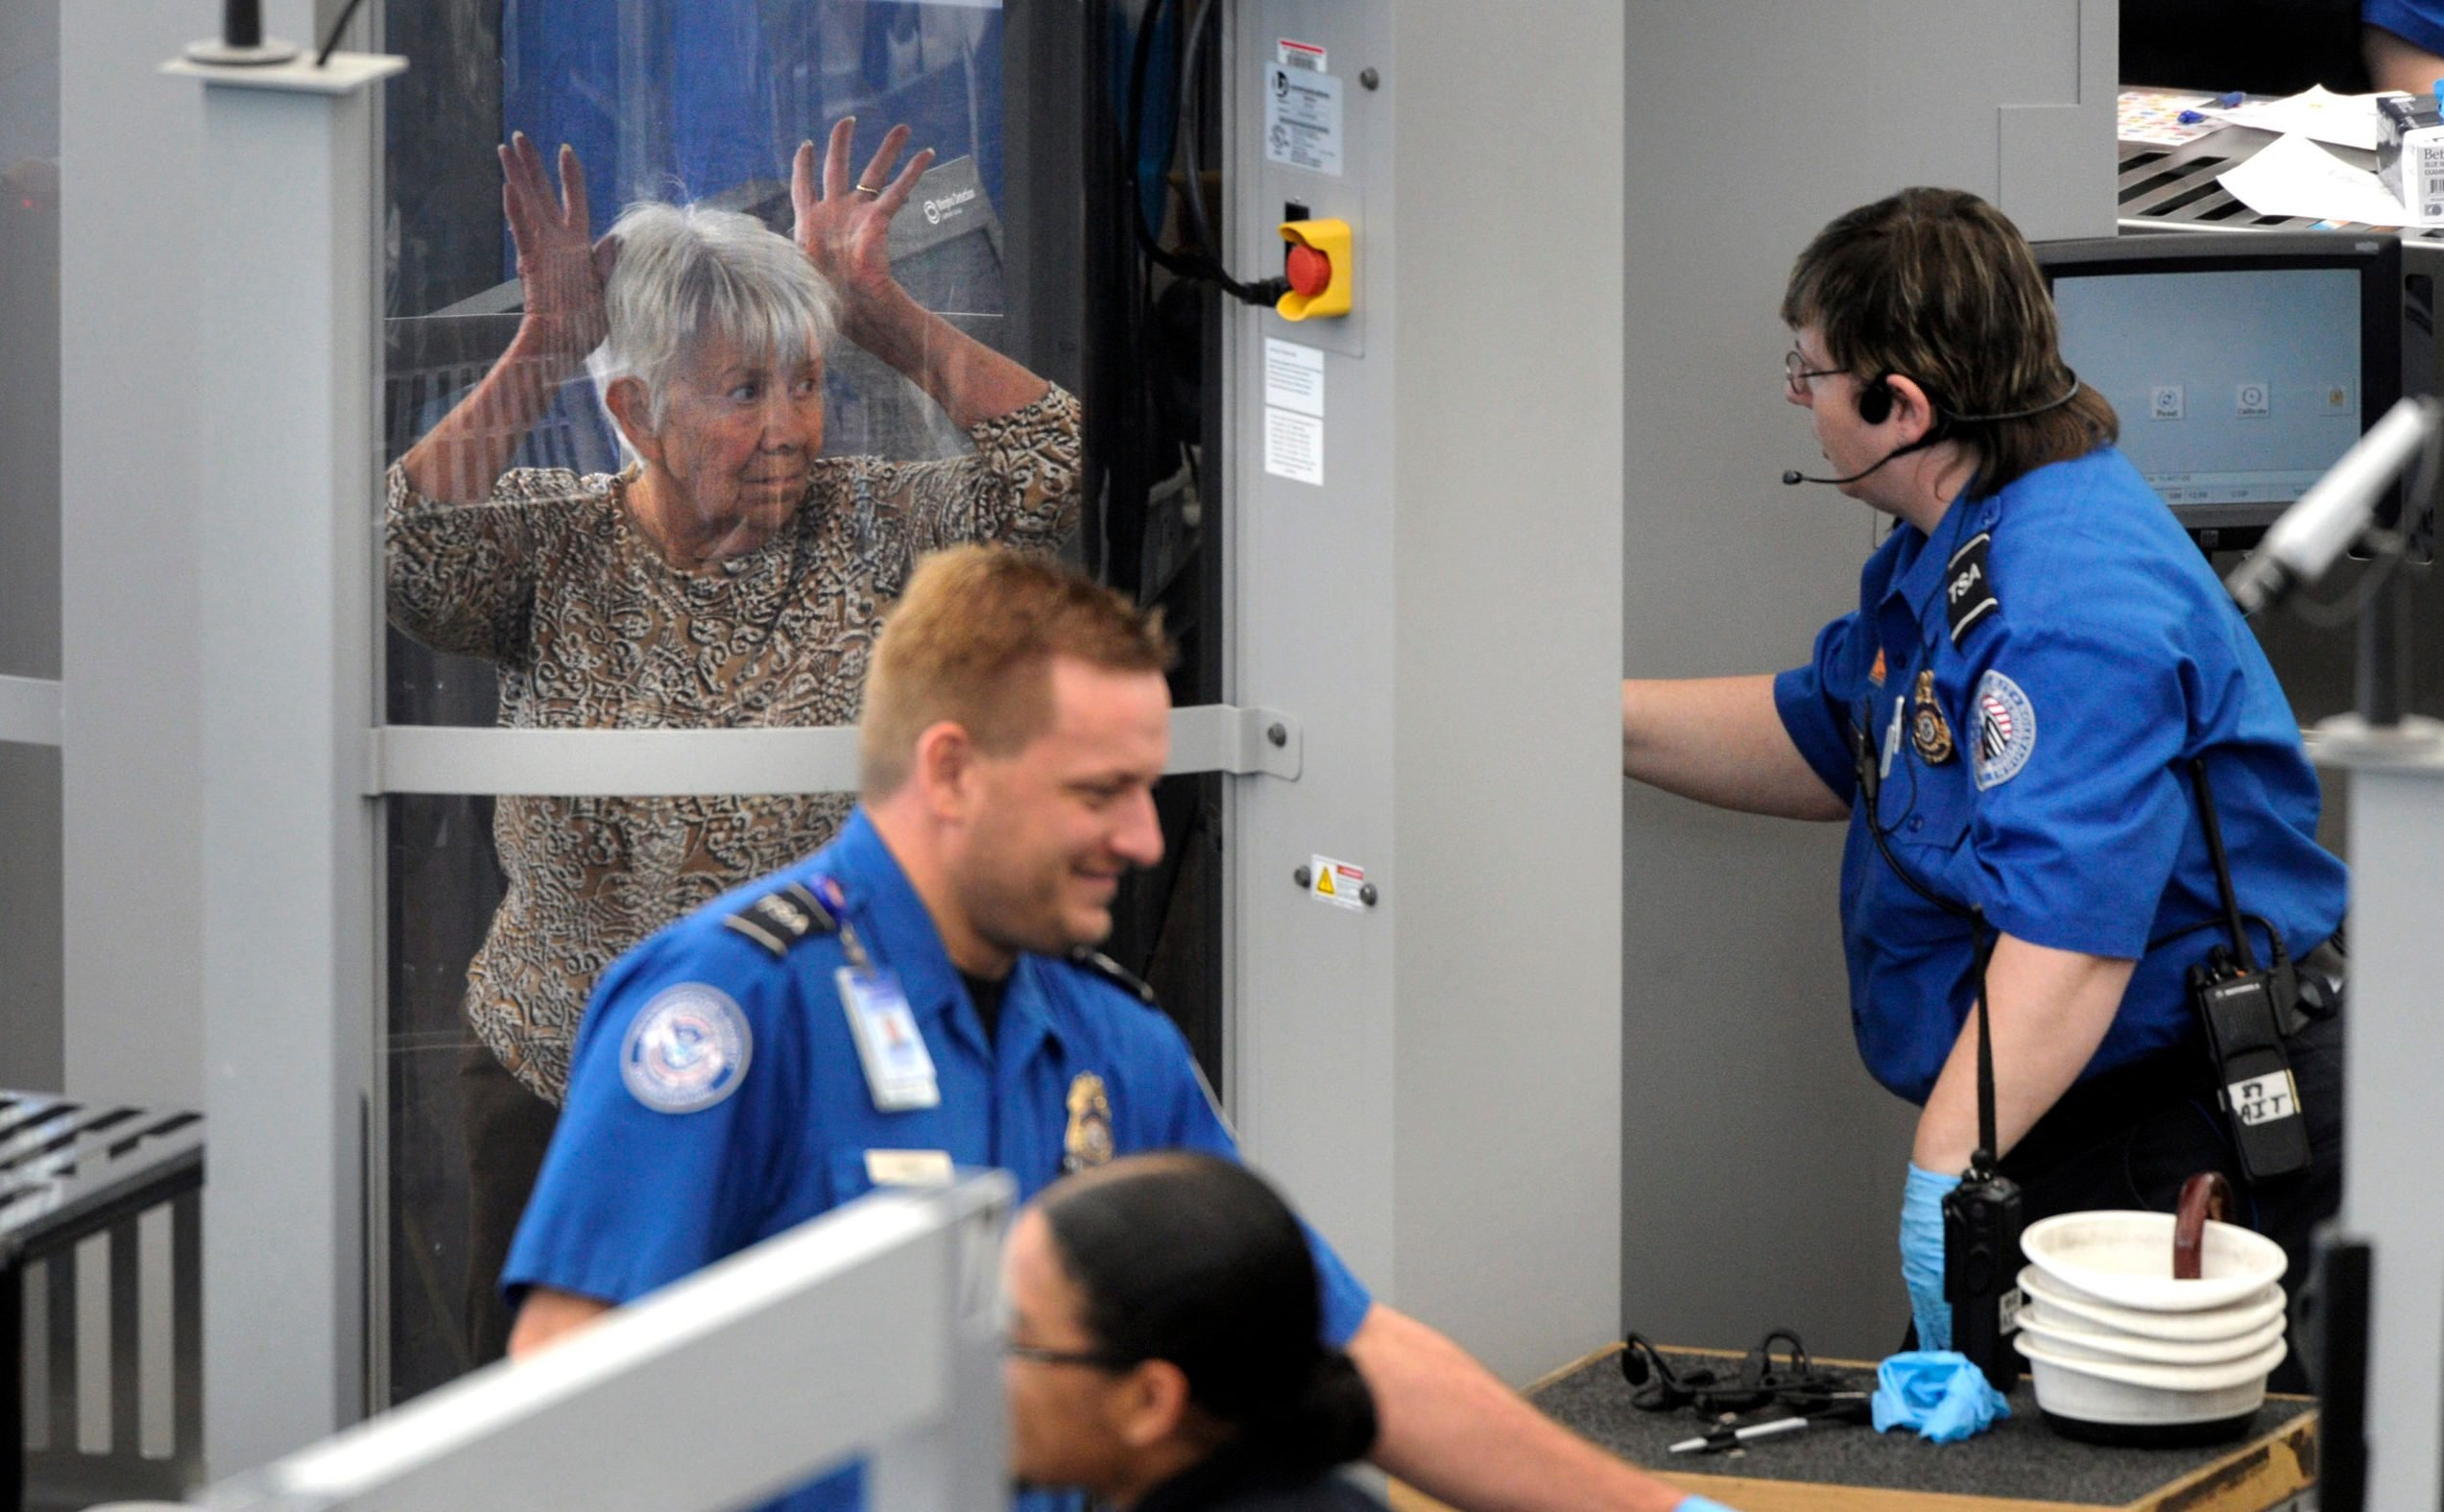 111710_PATDOWN_CFW- A woman gets instruction from a Transportation Security Administration agent while passing through a full body scanner at Denver International Airport in Denver, CO, November 17, 2010. (Craig F. Walker/ The Denver Post)